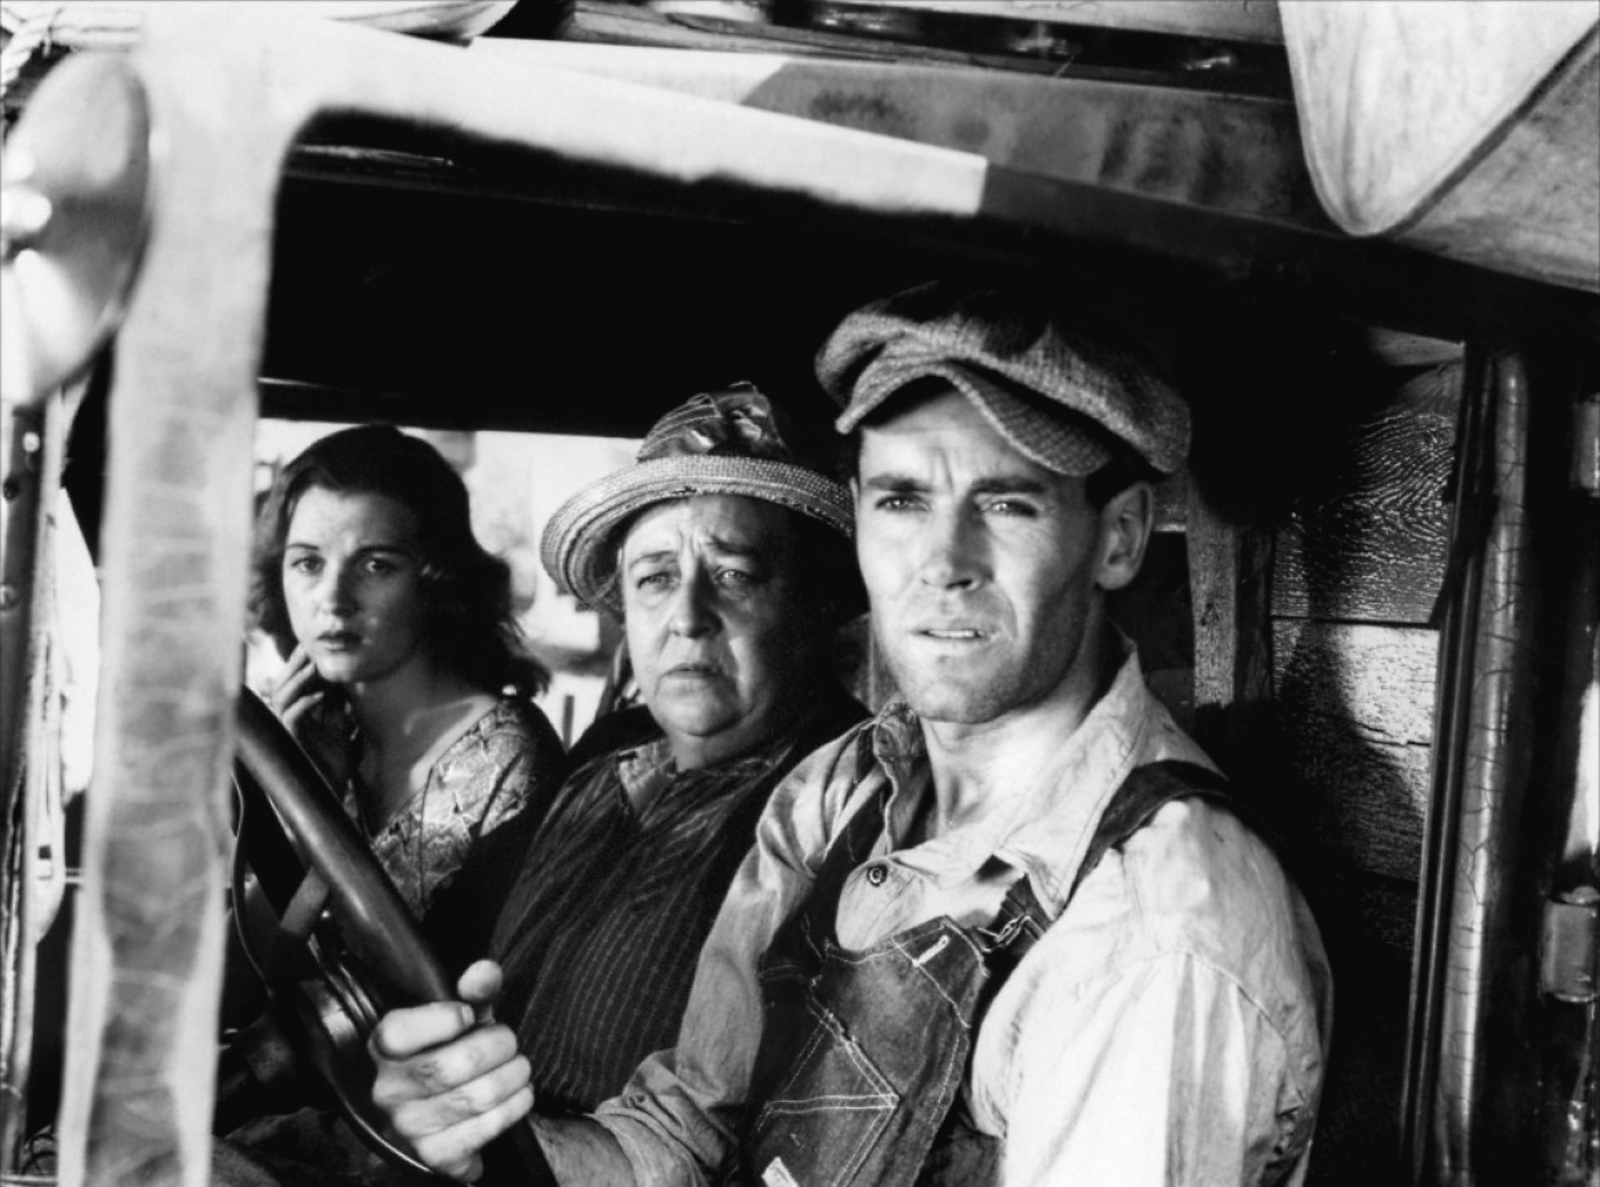 the desperate conditions of the american families in the grapes of wrath